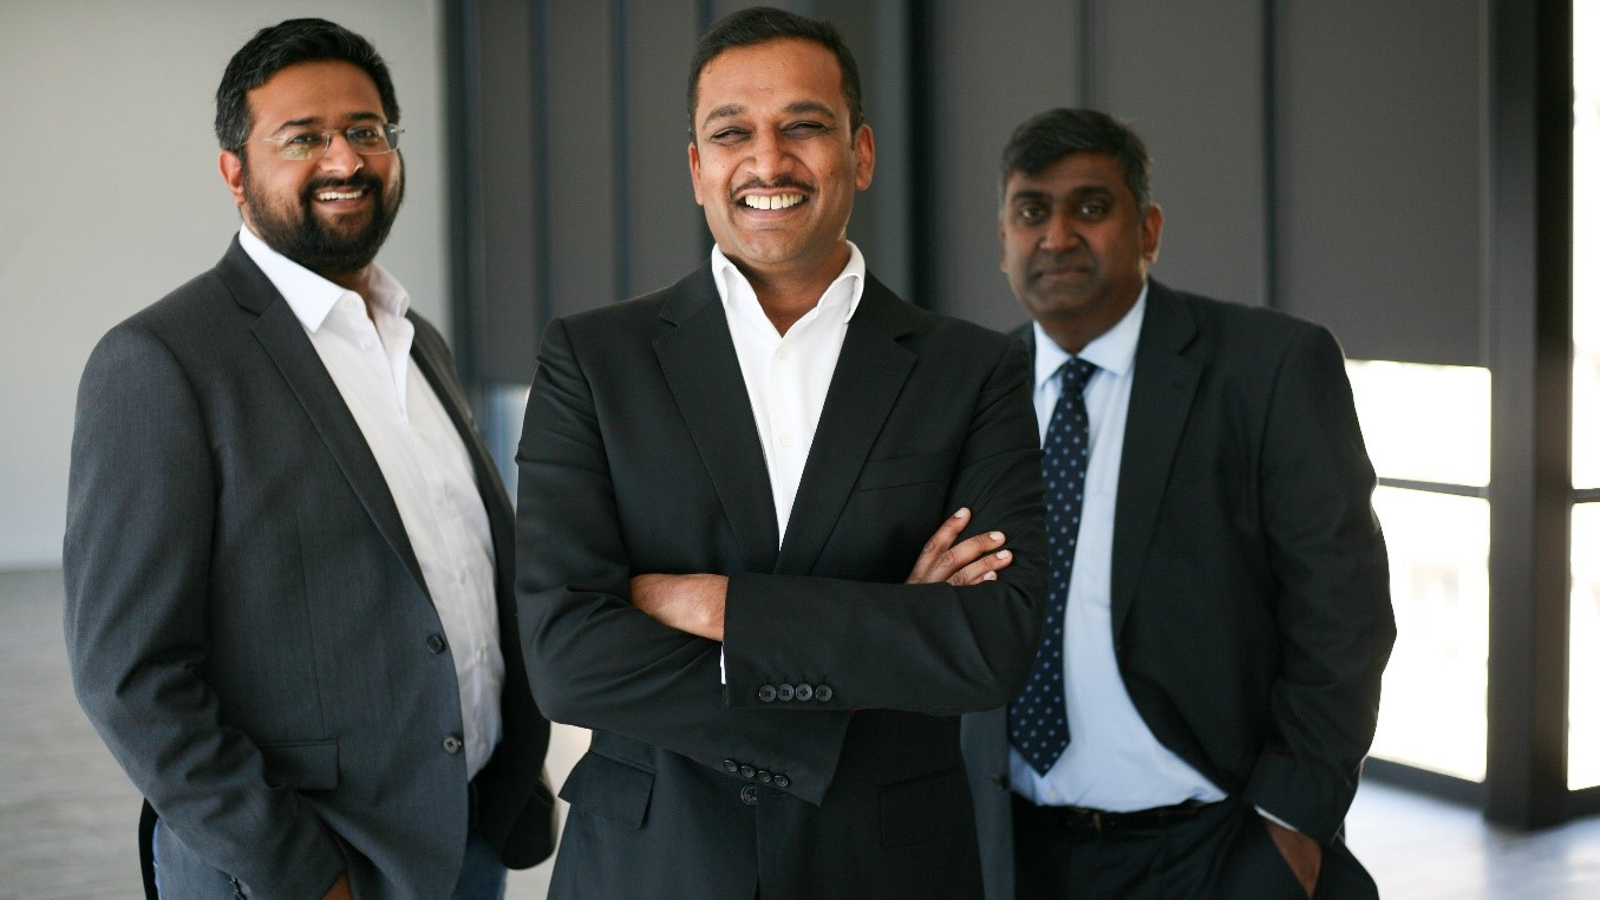 Featured image (left to right): Fo-Sho foudning team Mithun Kalan, Avi Naidoo, and Siva Moodley (Supplied)